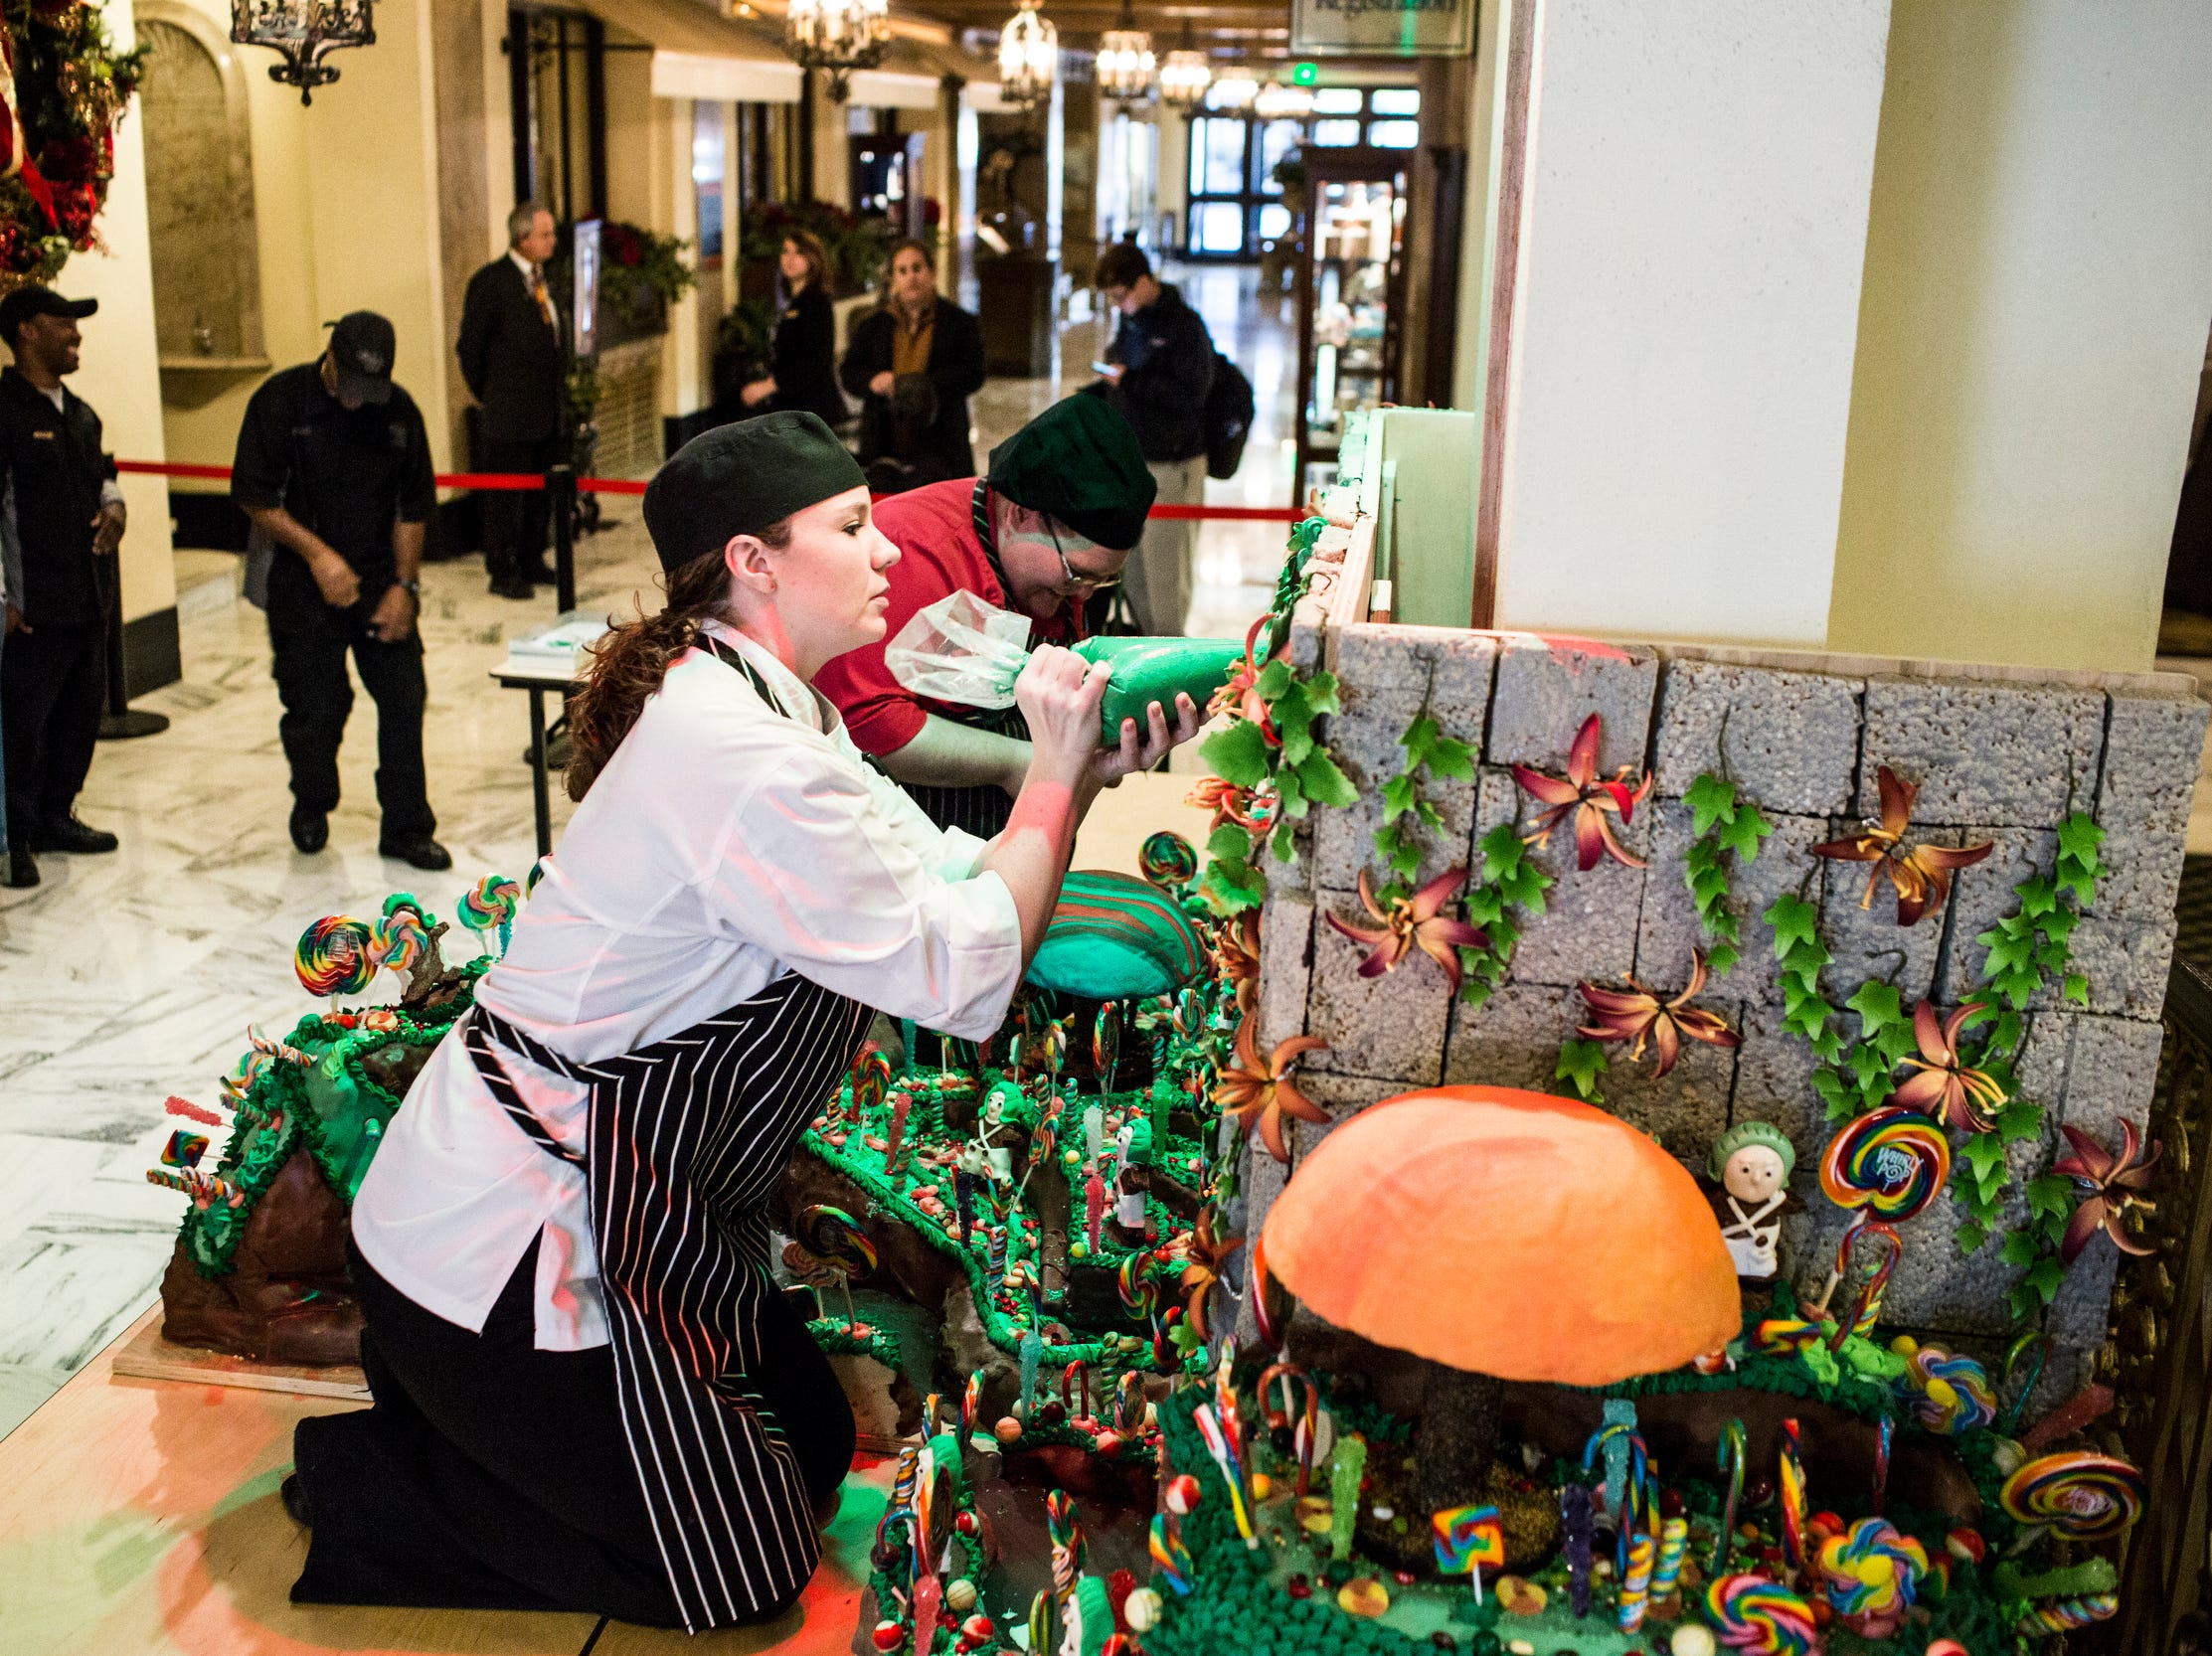 November 20 2018 - Elaine Jones, assistant pastry chef, adds frosting to the holiday gingerbread display at the Peabody Hotel. Chef Konrad Spitzbart does an elaborate holiday Gingerbread display every year that work is started on months in advance.